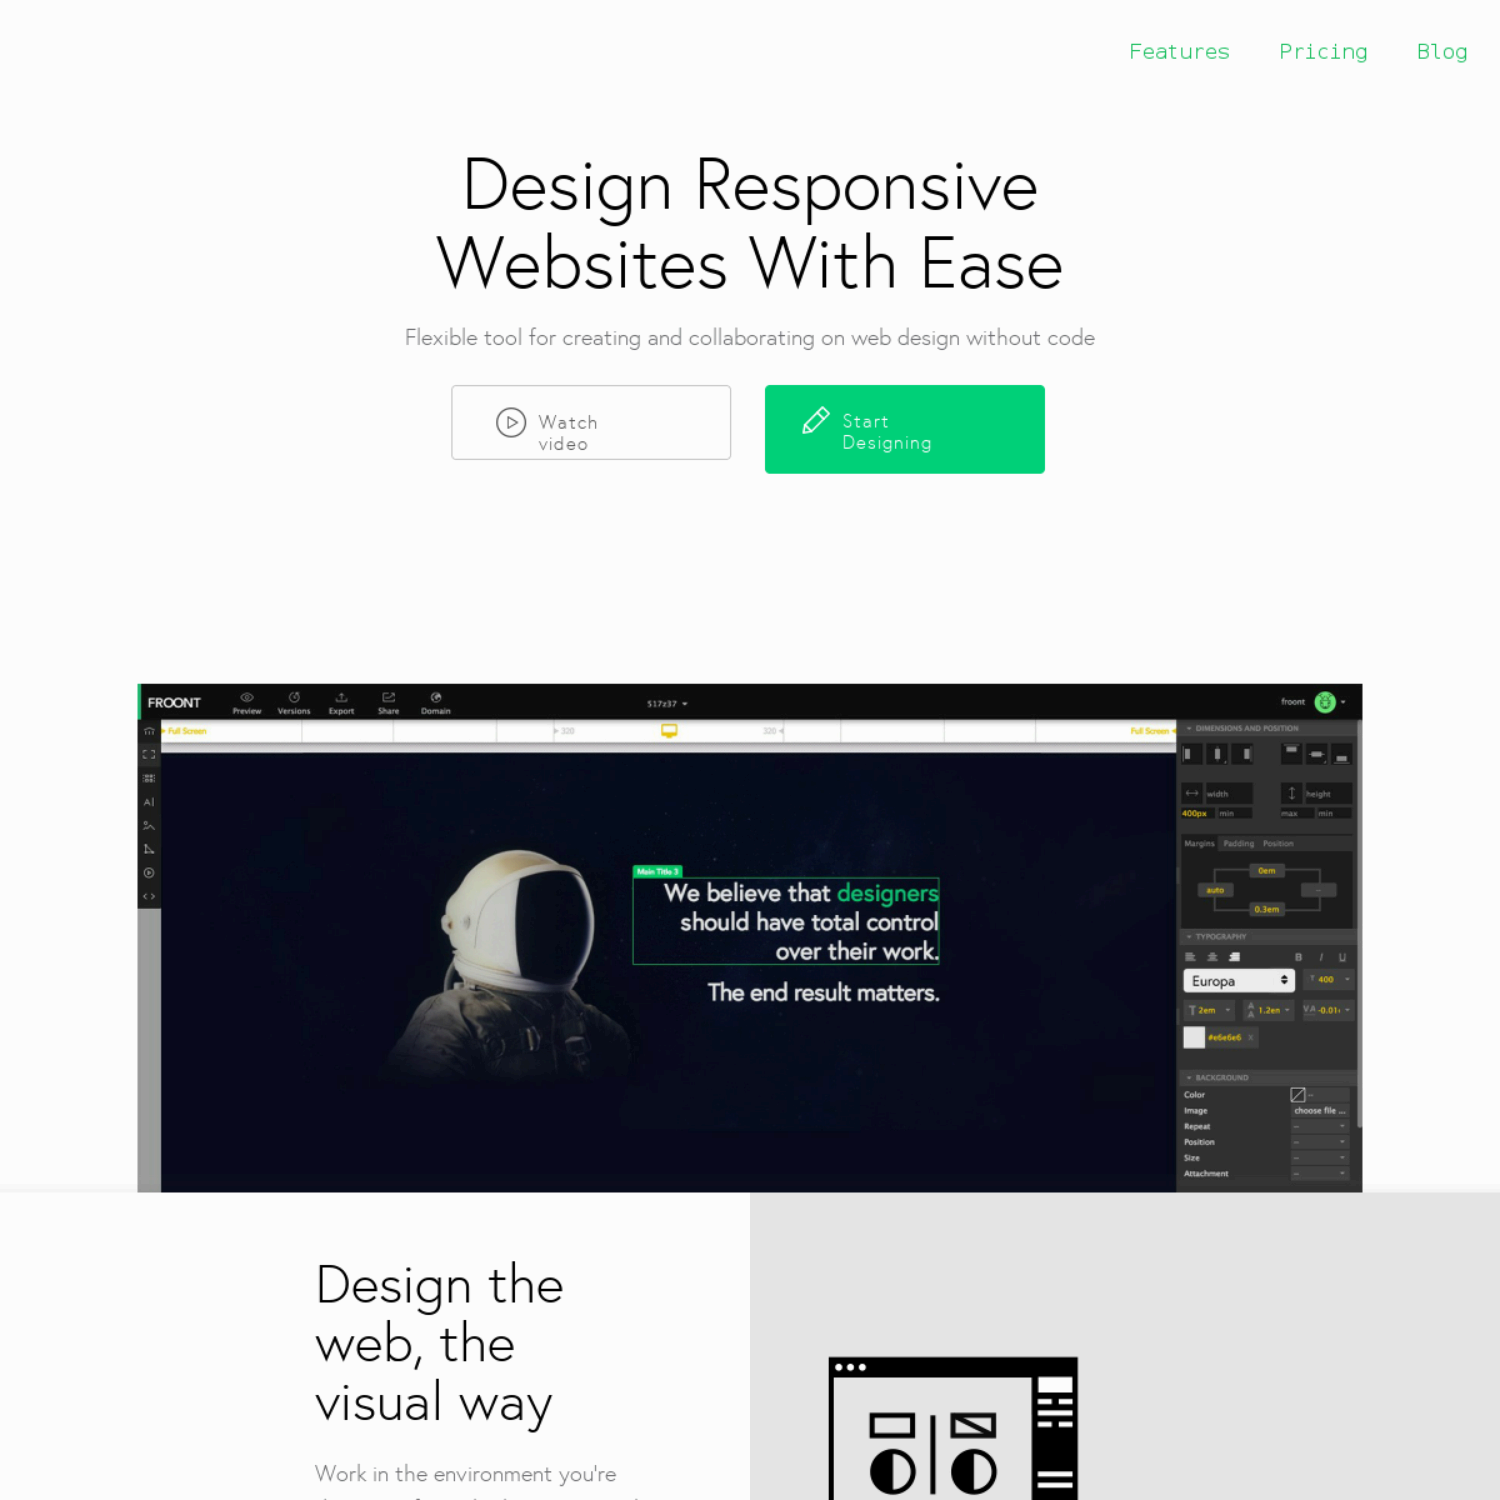 Design Responsive Websites With Ease - Flexible tool for creating and collaborating on web design without code - prototyping tool